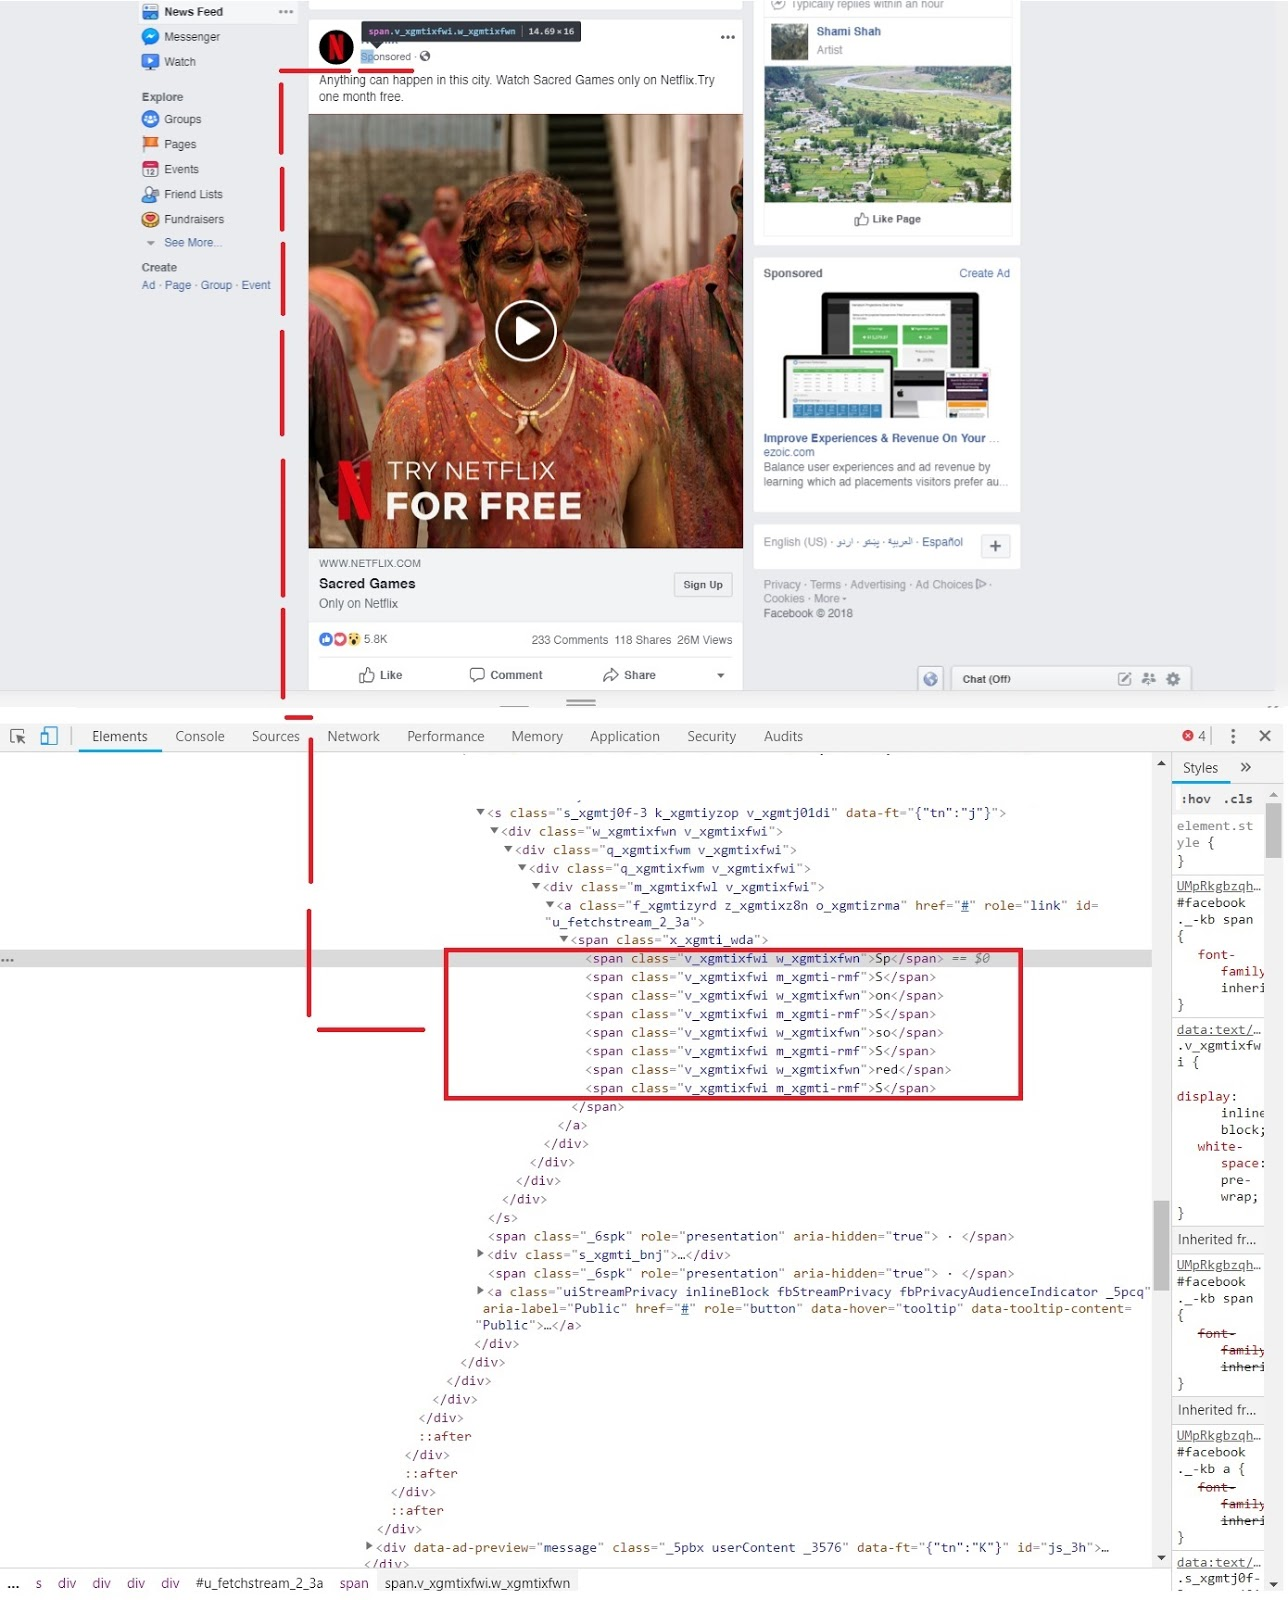 Facebook uses 'divide and rule policy' in its source code to show the ads to users who use ad blockers